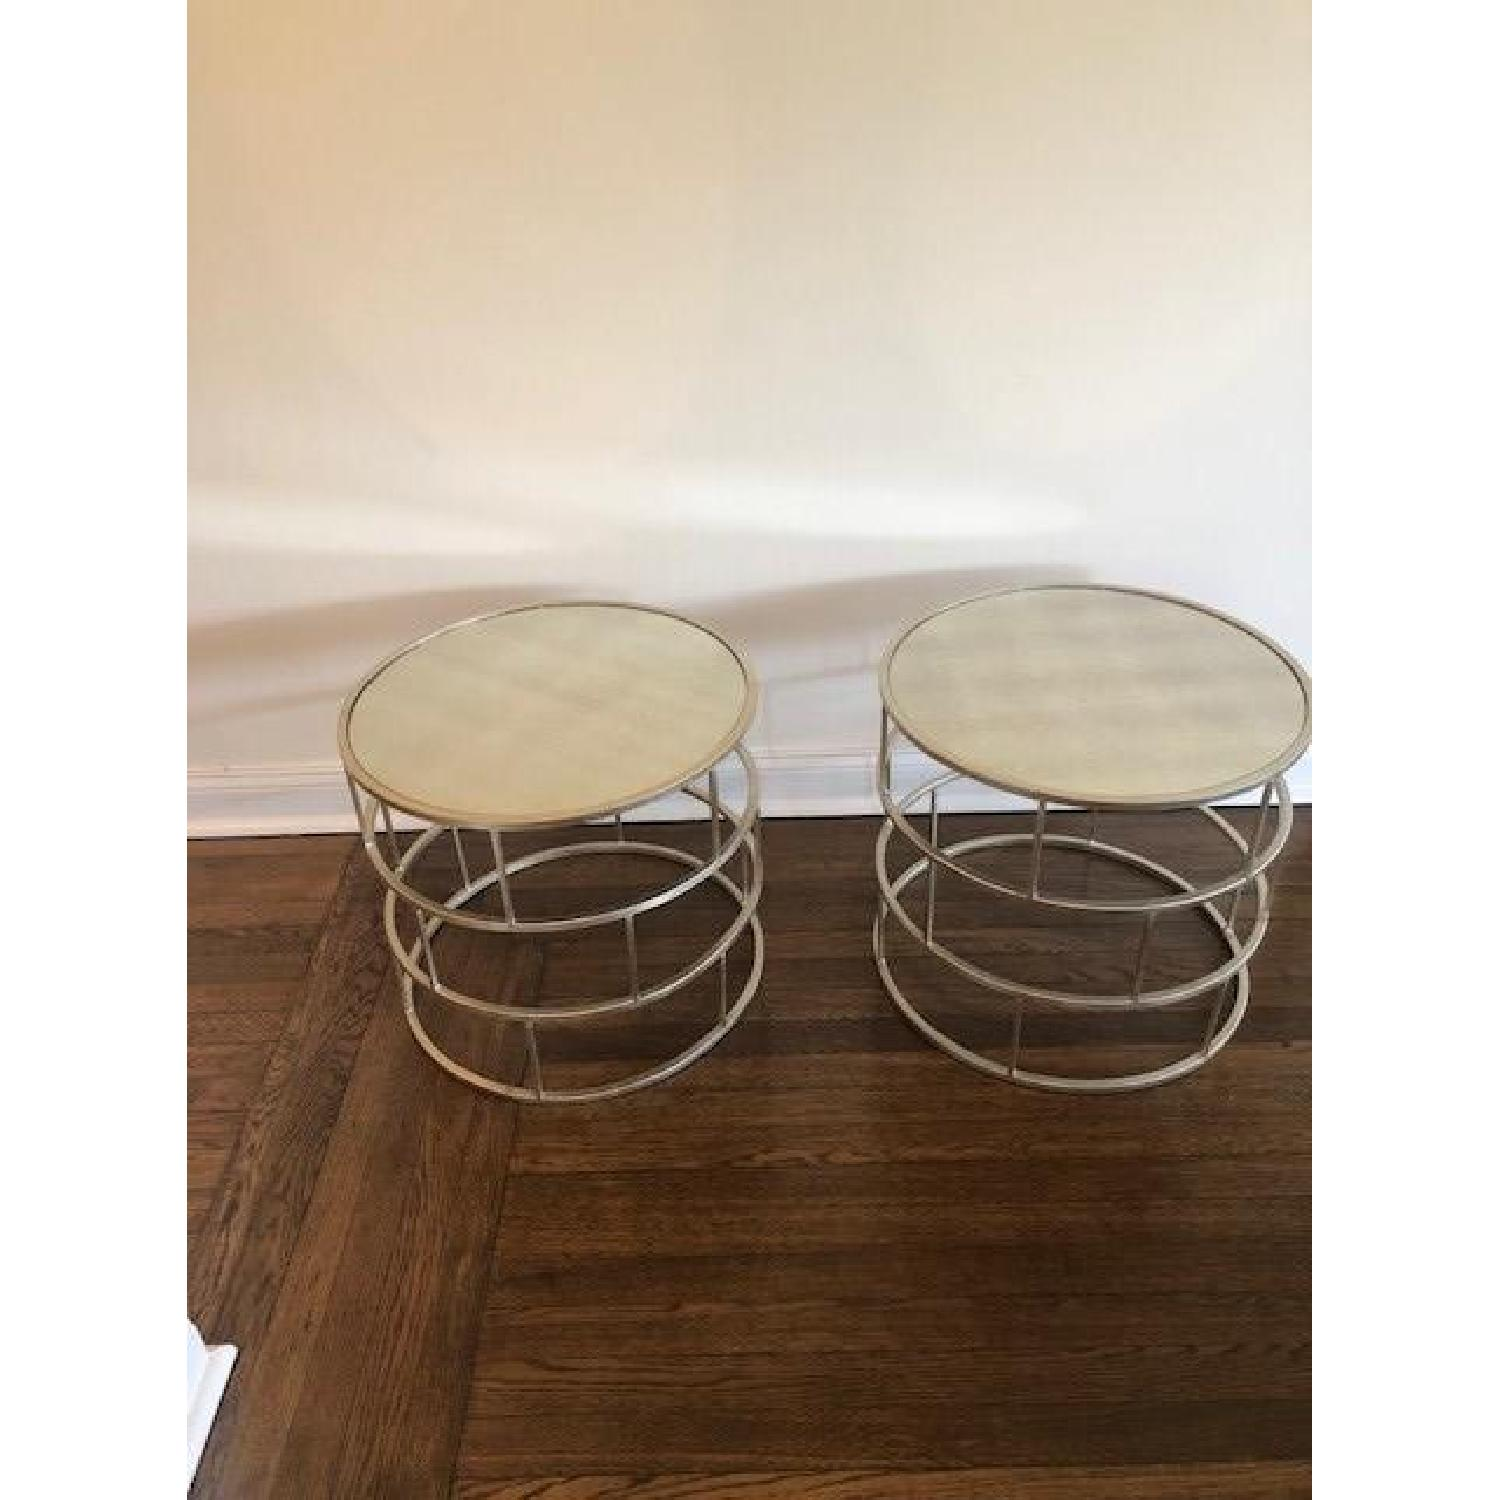 Modern Round Mirrored End Tables-2